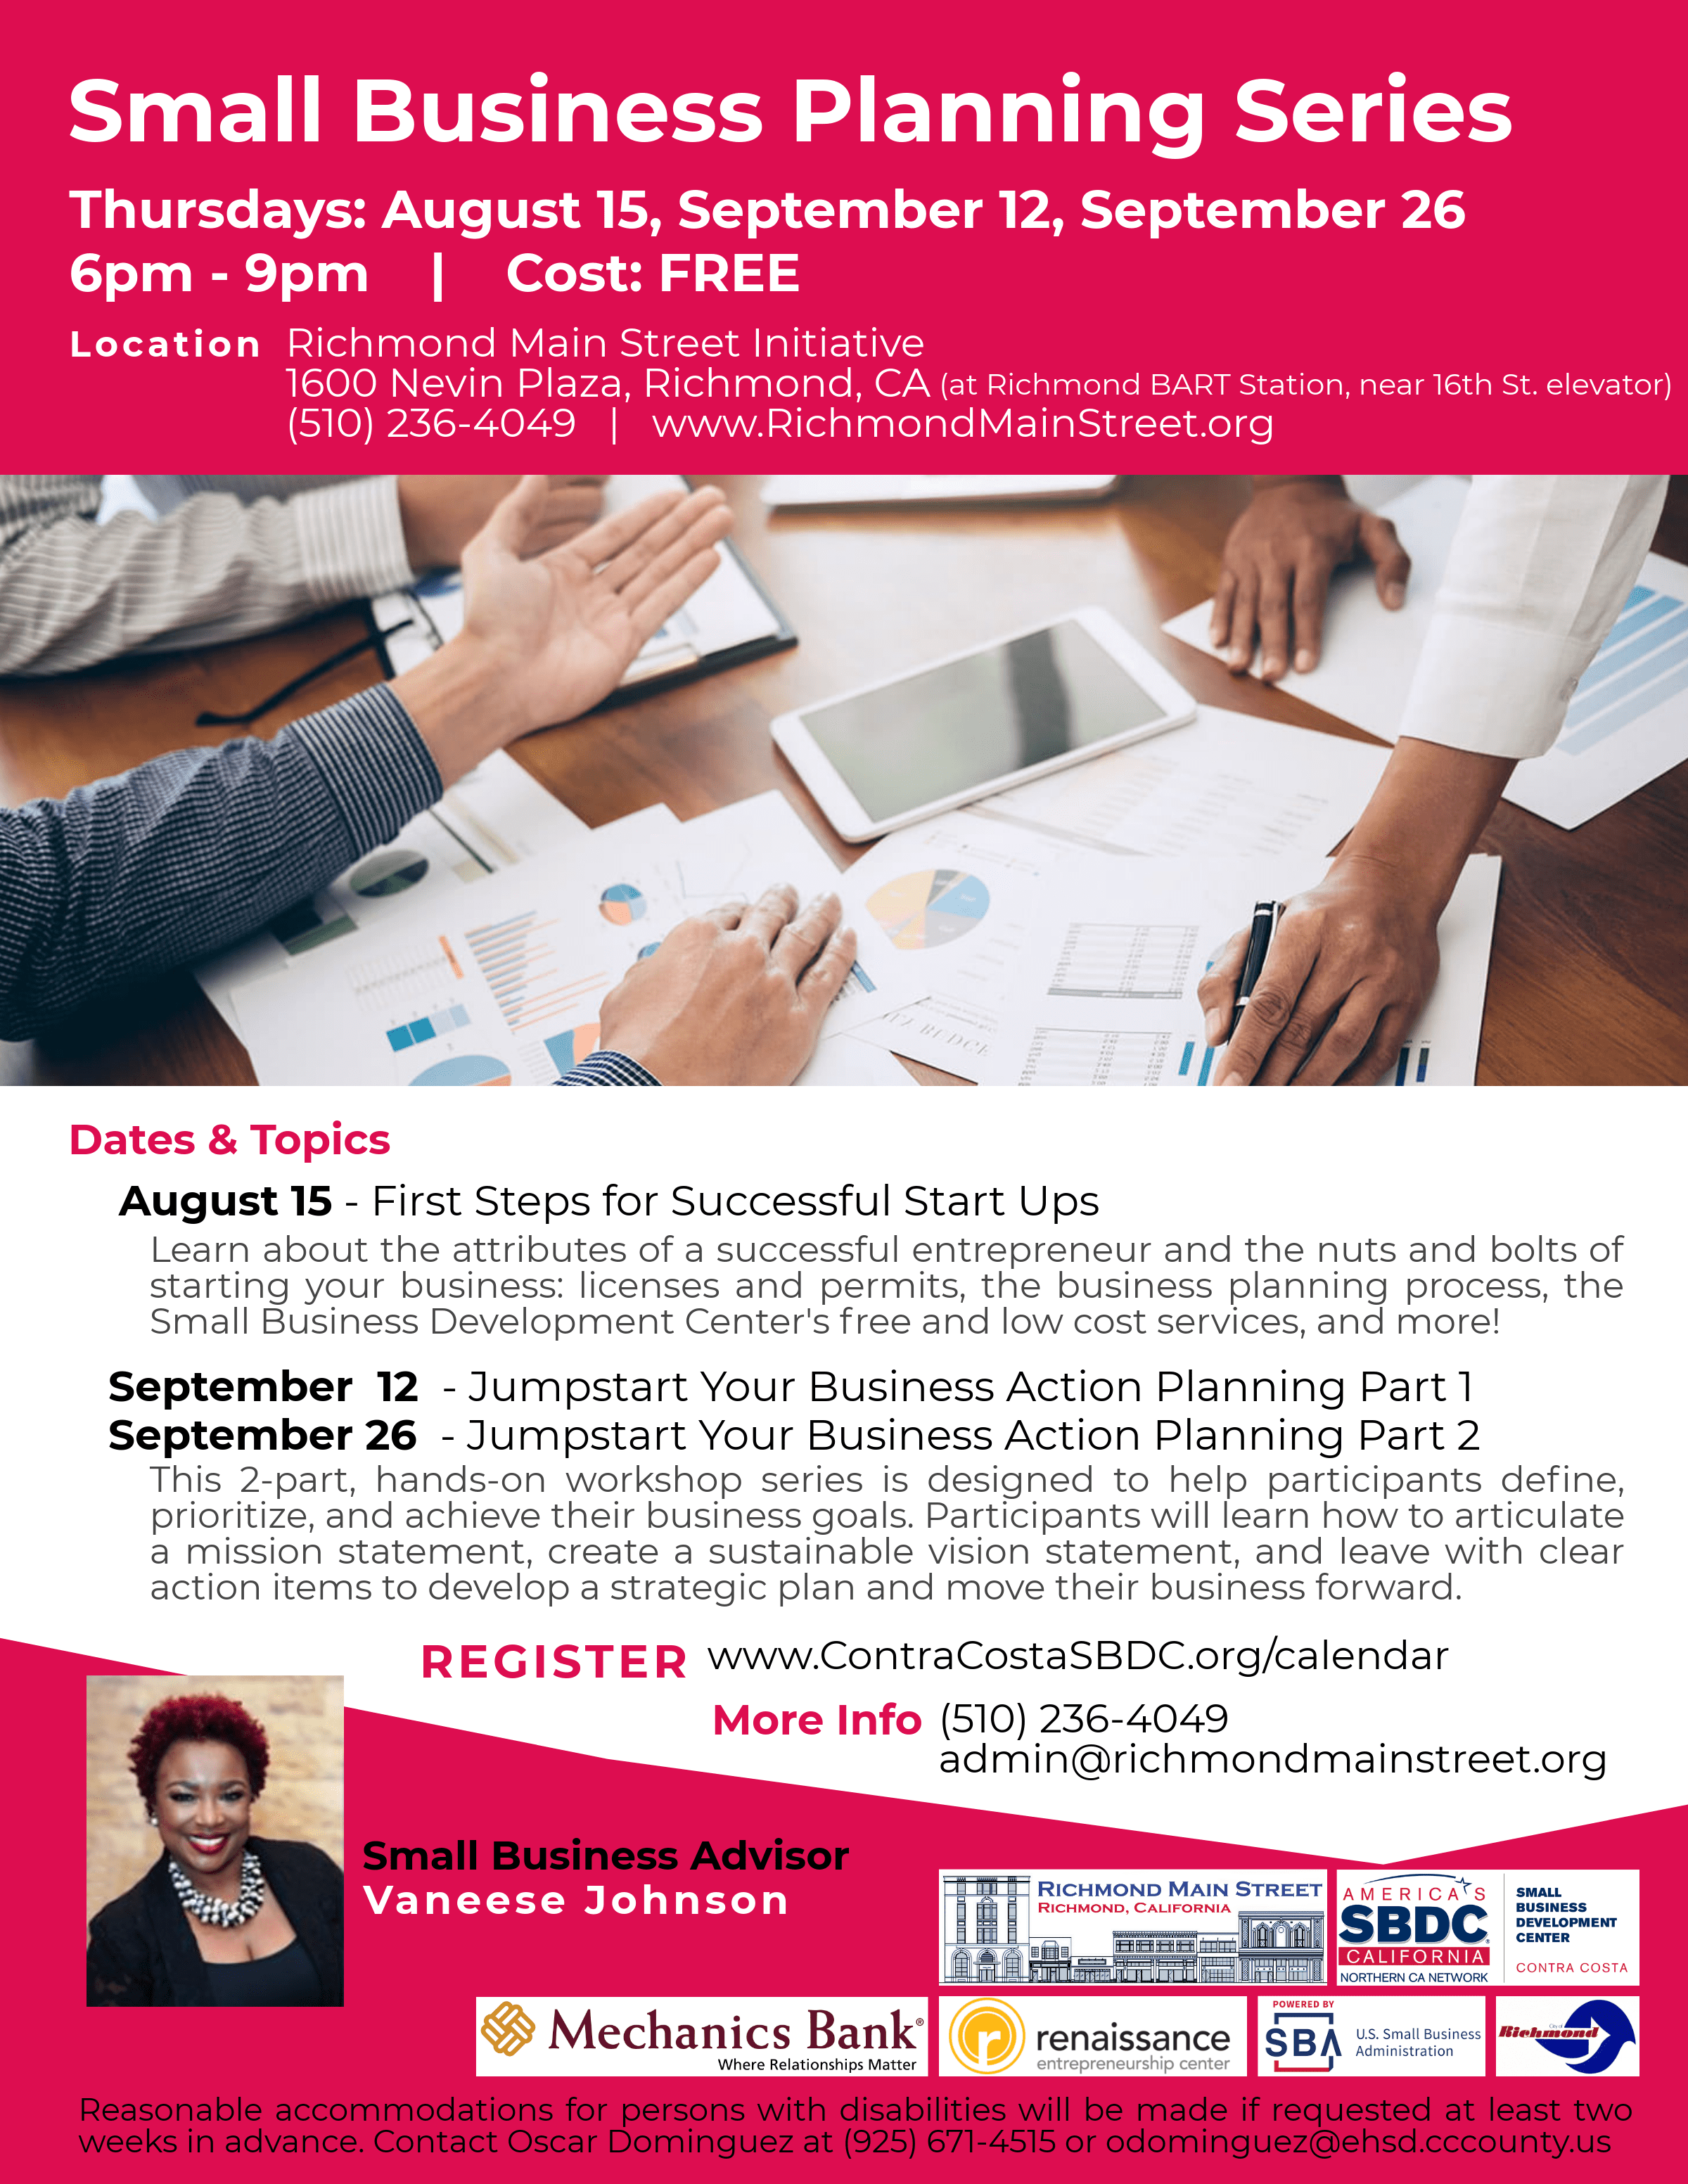 Back by Popular Demand: FREE Business Planning Workshop Series Starts August 15